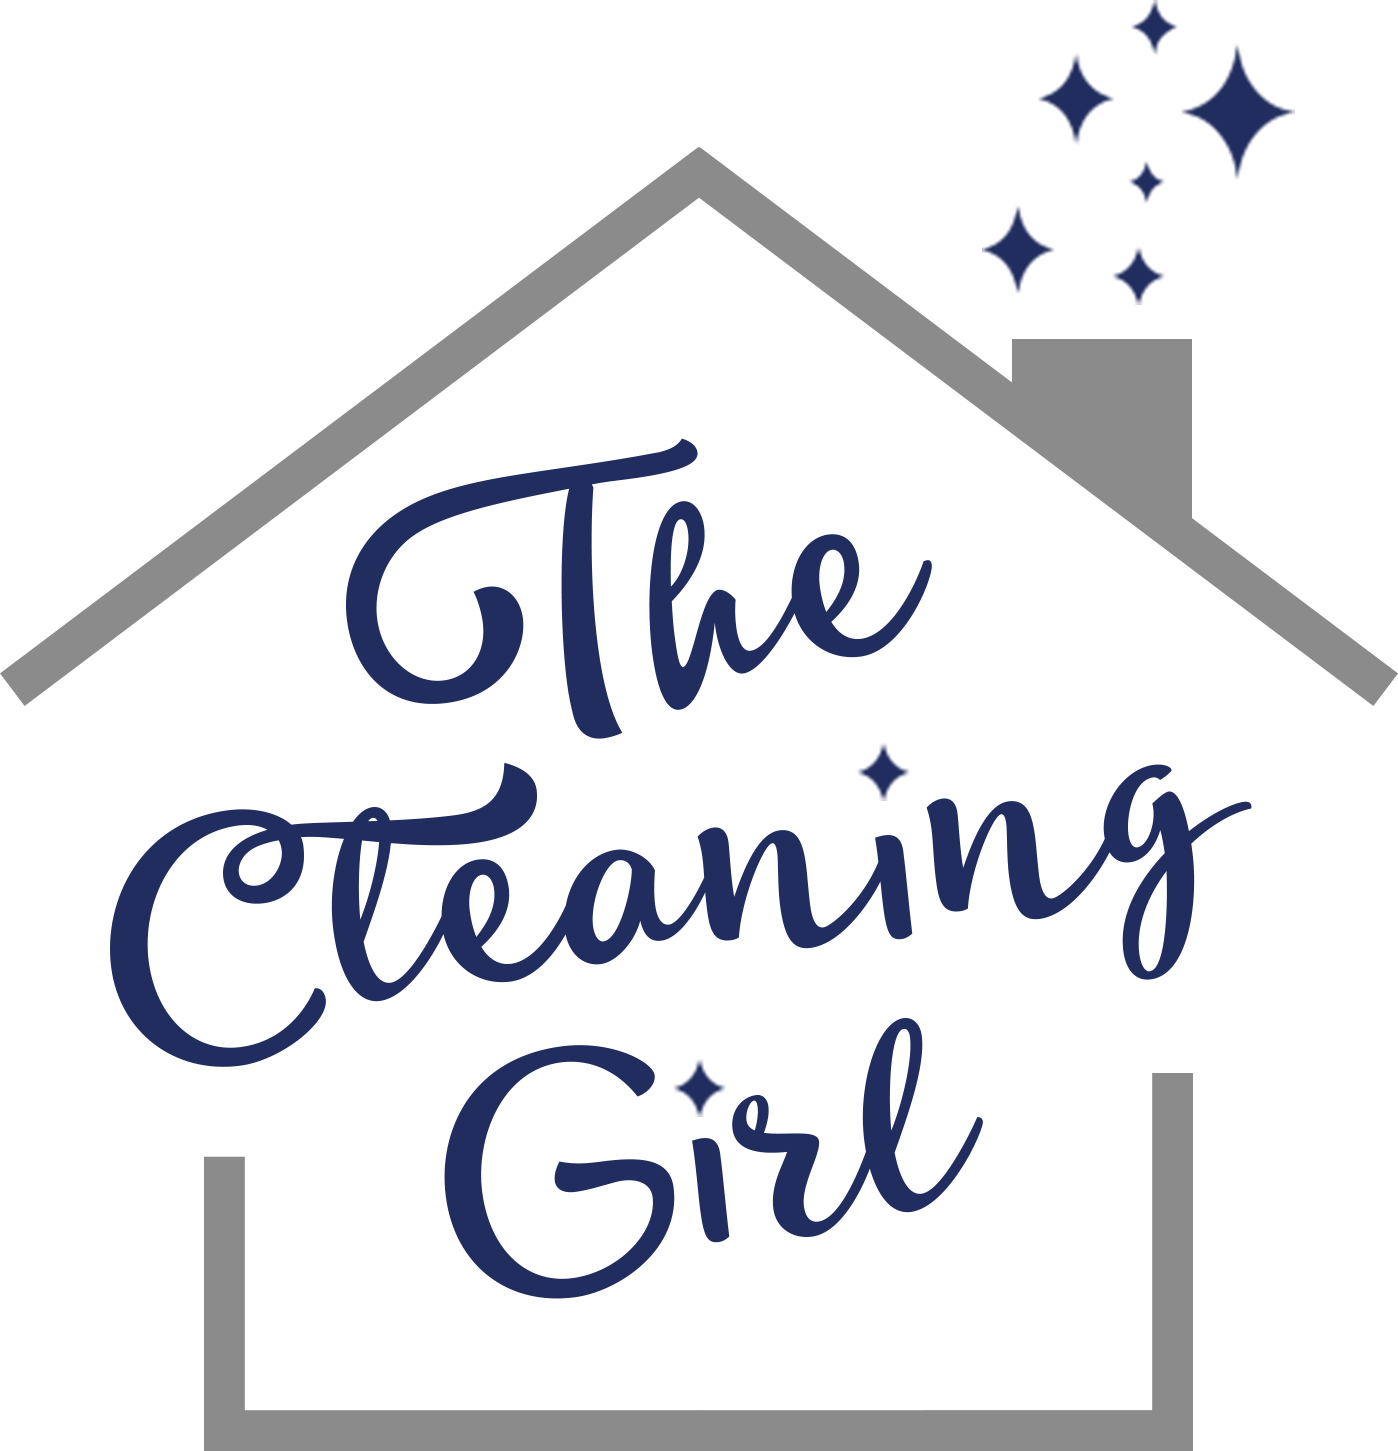 Clean house before and after clipart clip art black and white The Cleaning Girl Donates House Cleaning to Women Battling Cancer ... clip art black and white